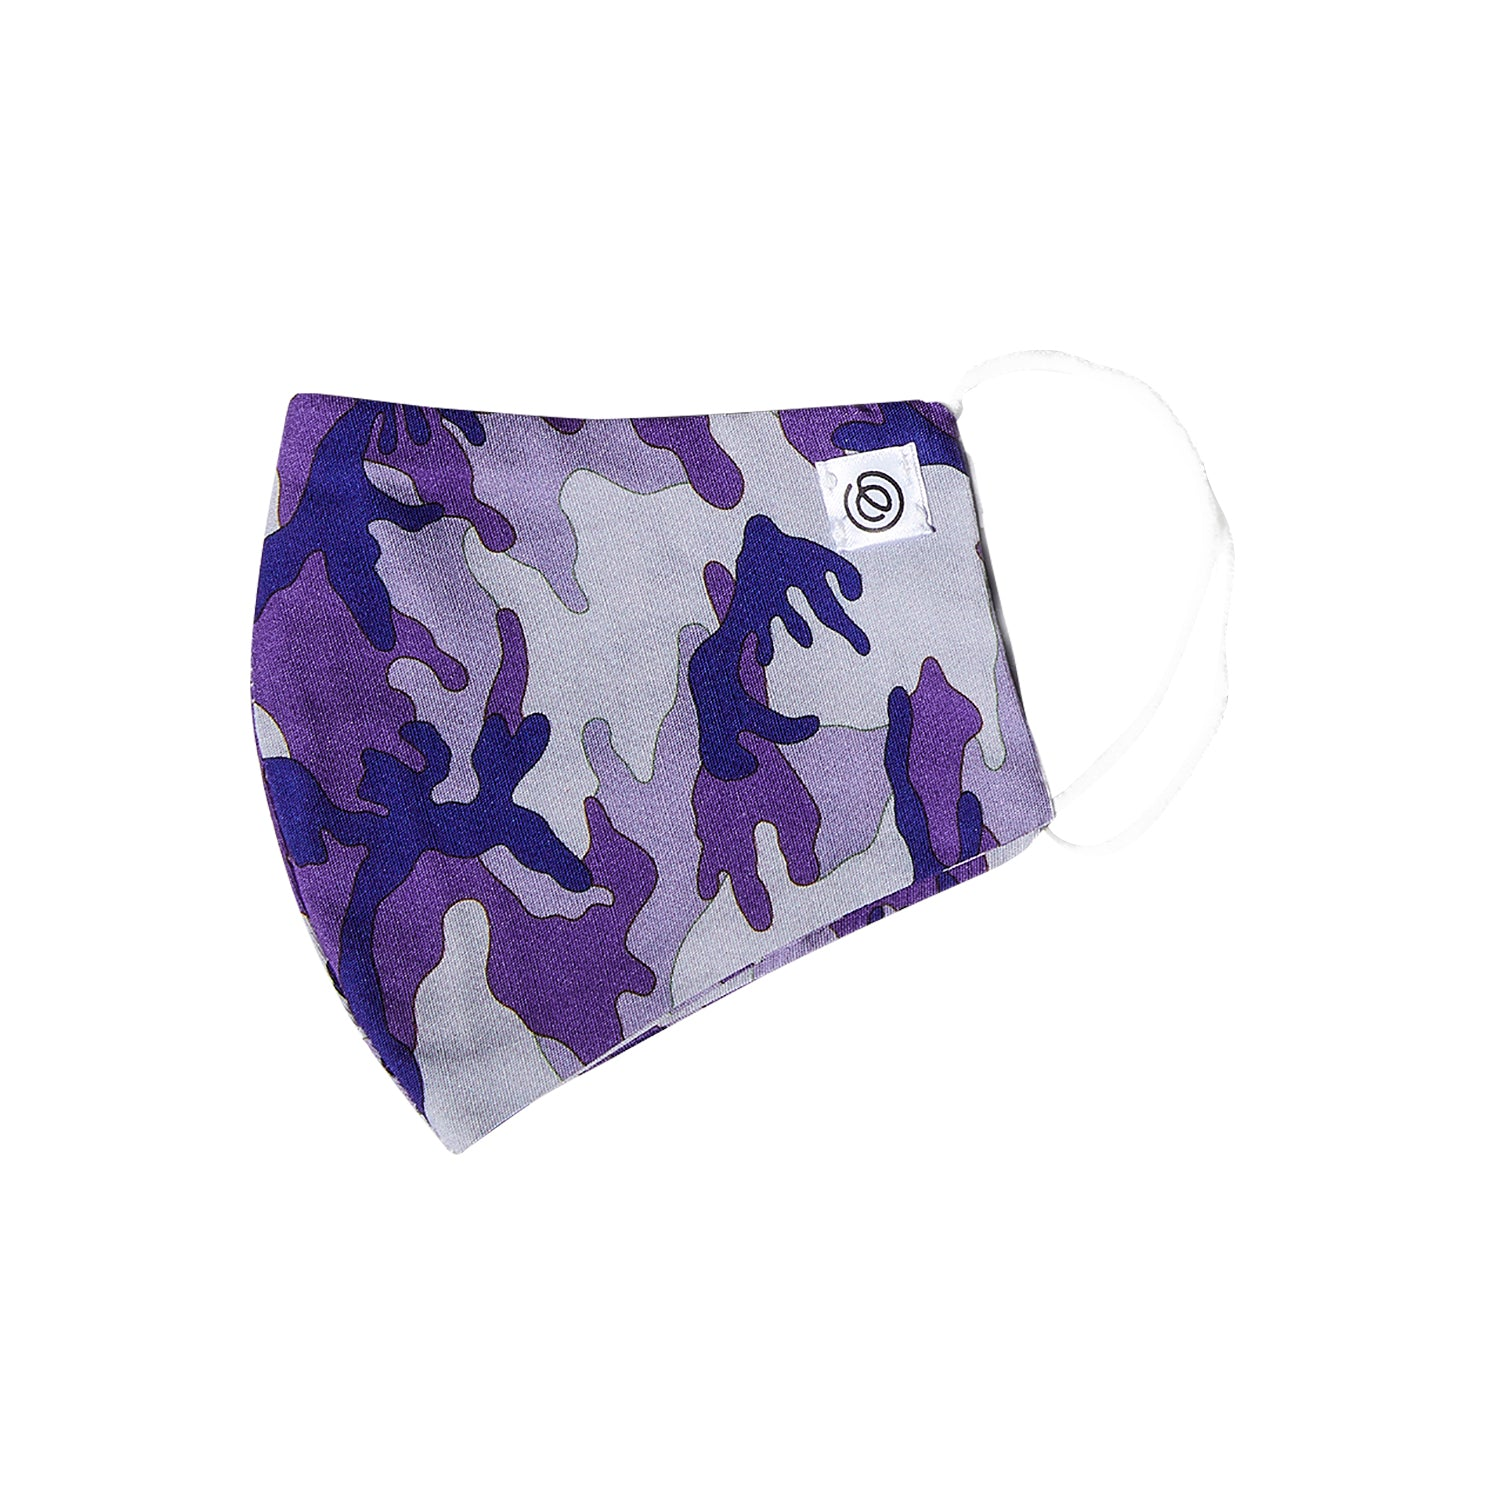 Easy Mask Full Face - Purple Camo (3 Pack)